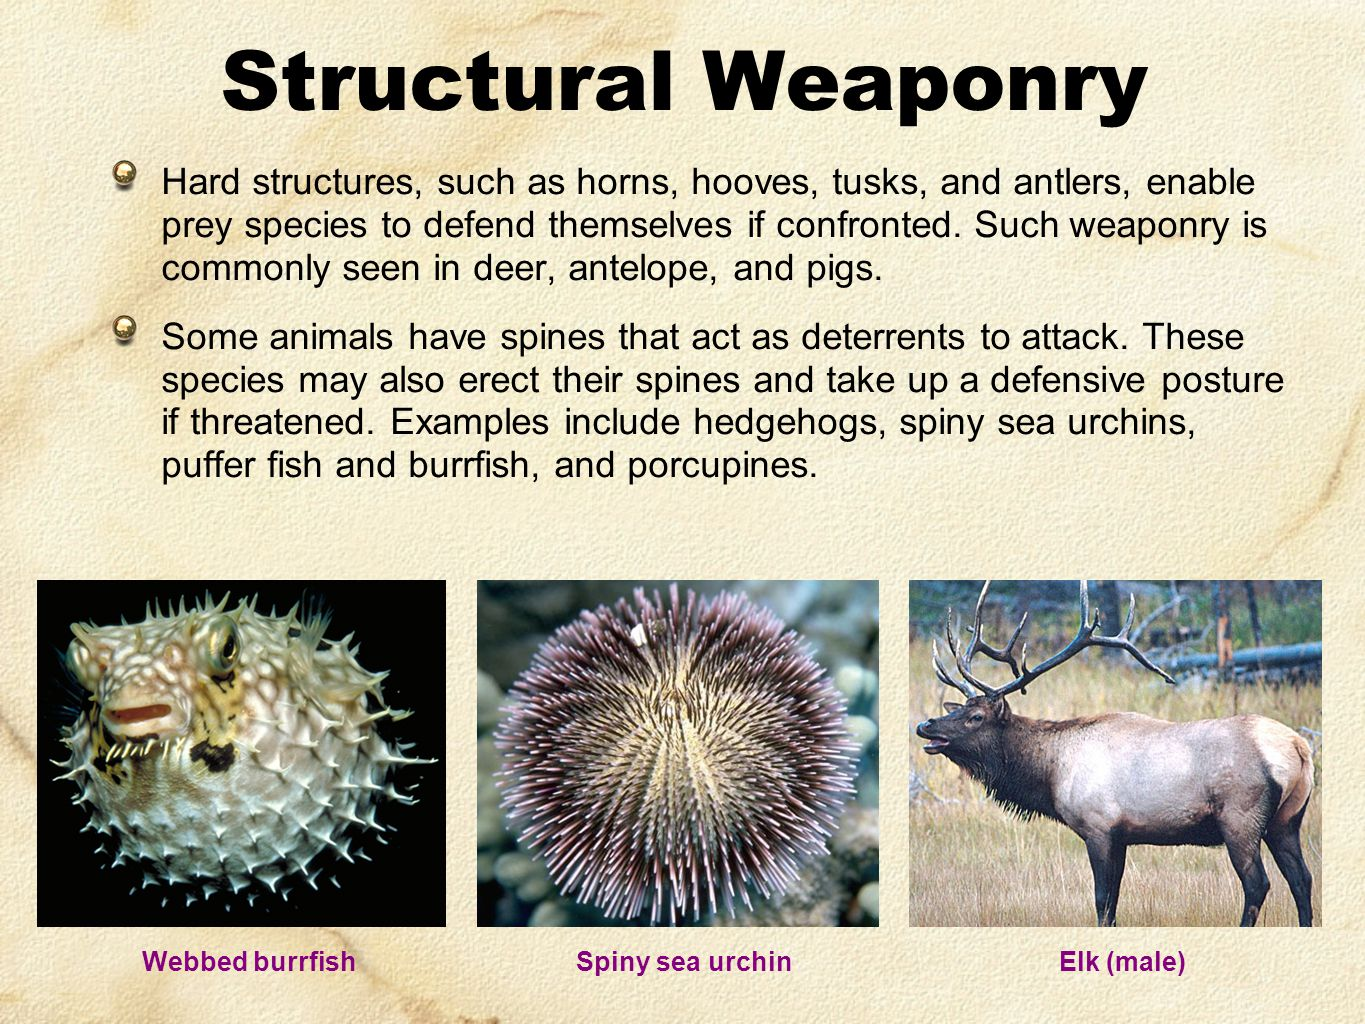 Hard structures, such as horns, hooves, tusks, and antlers, enable prey species to defend themselves if confronted. Such weaponry is commonly seen in